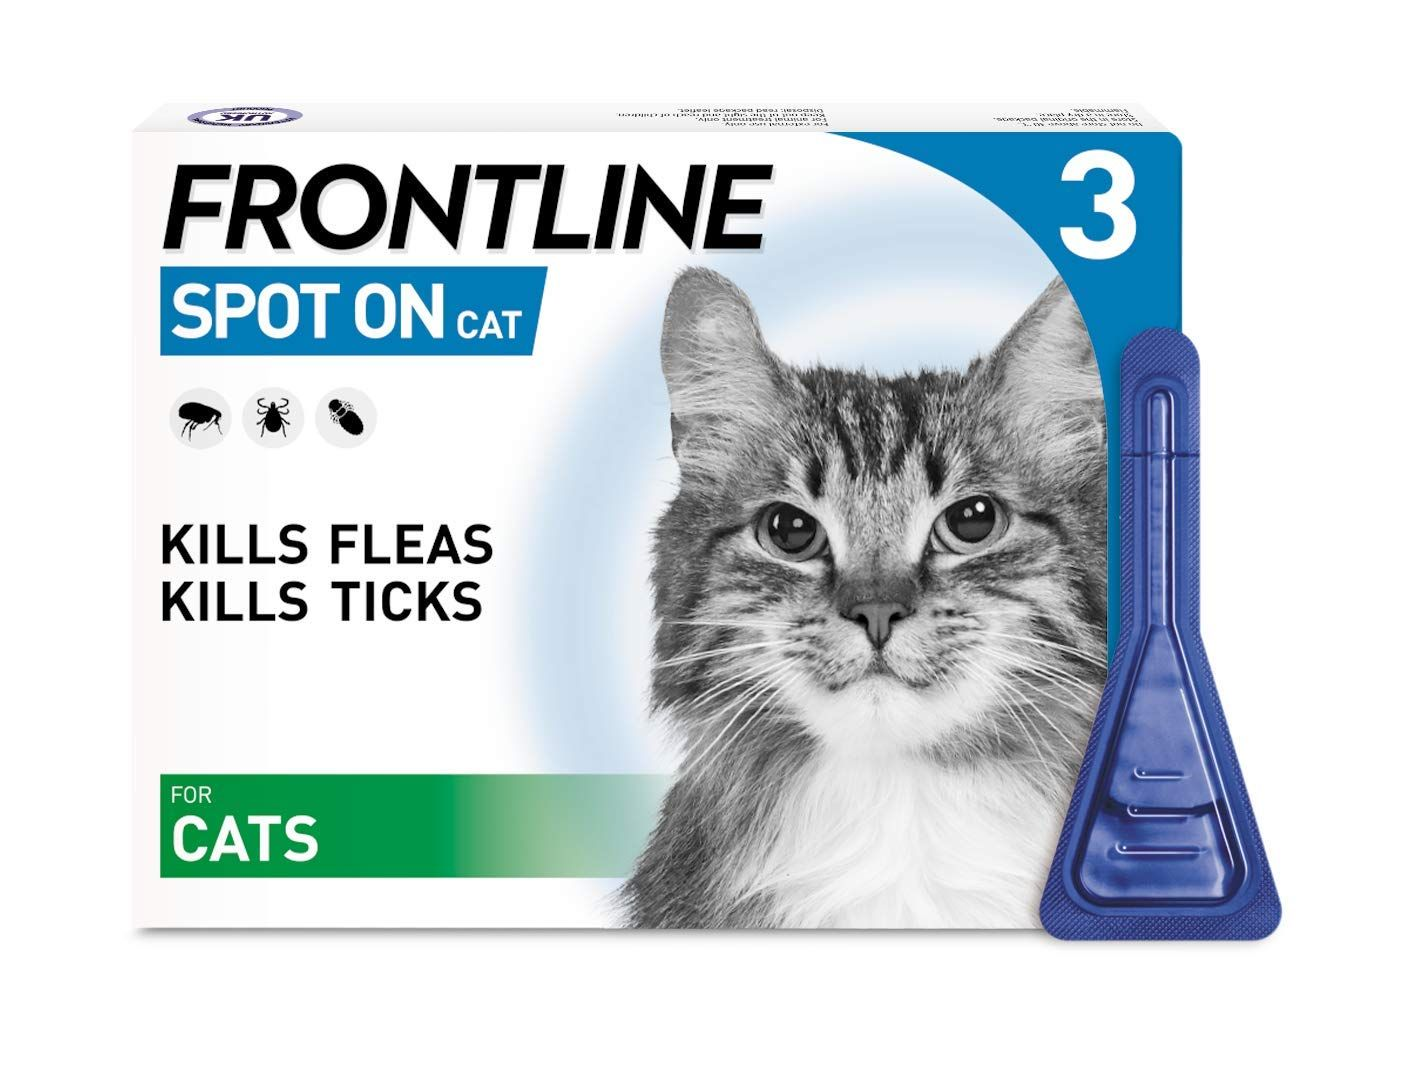 Kills fleas on your pet within 24 hours Kills ticks within